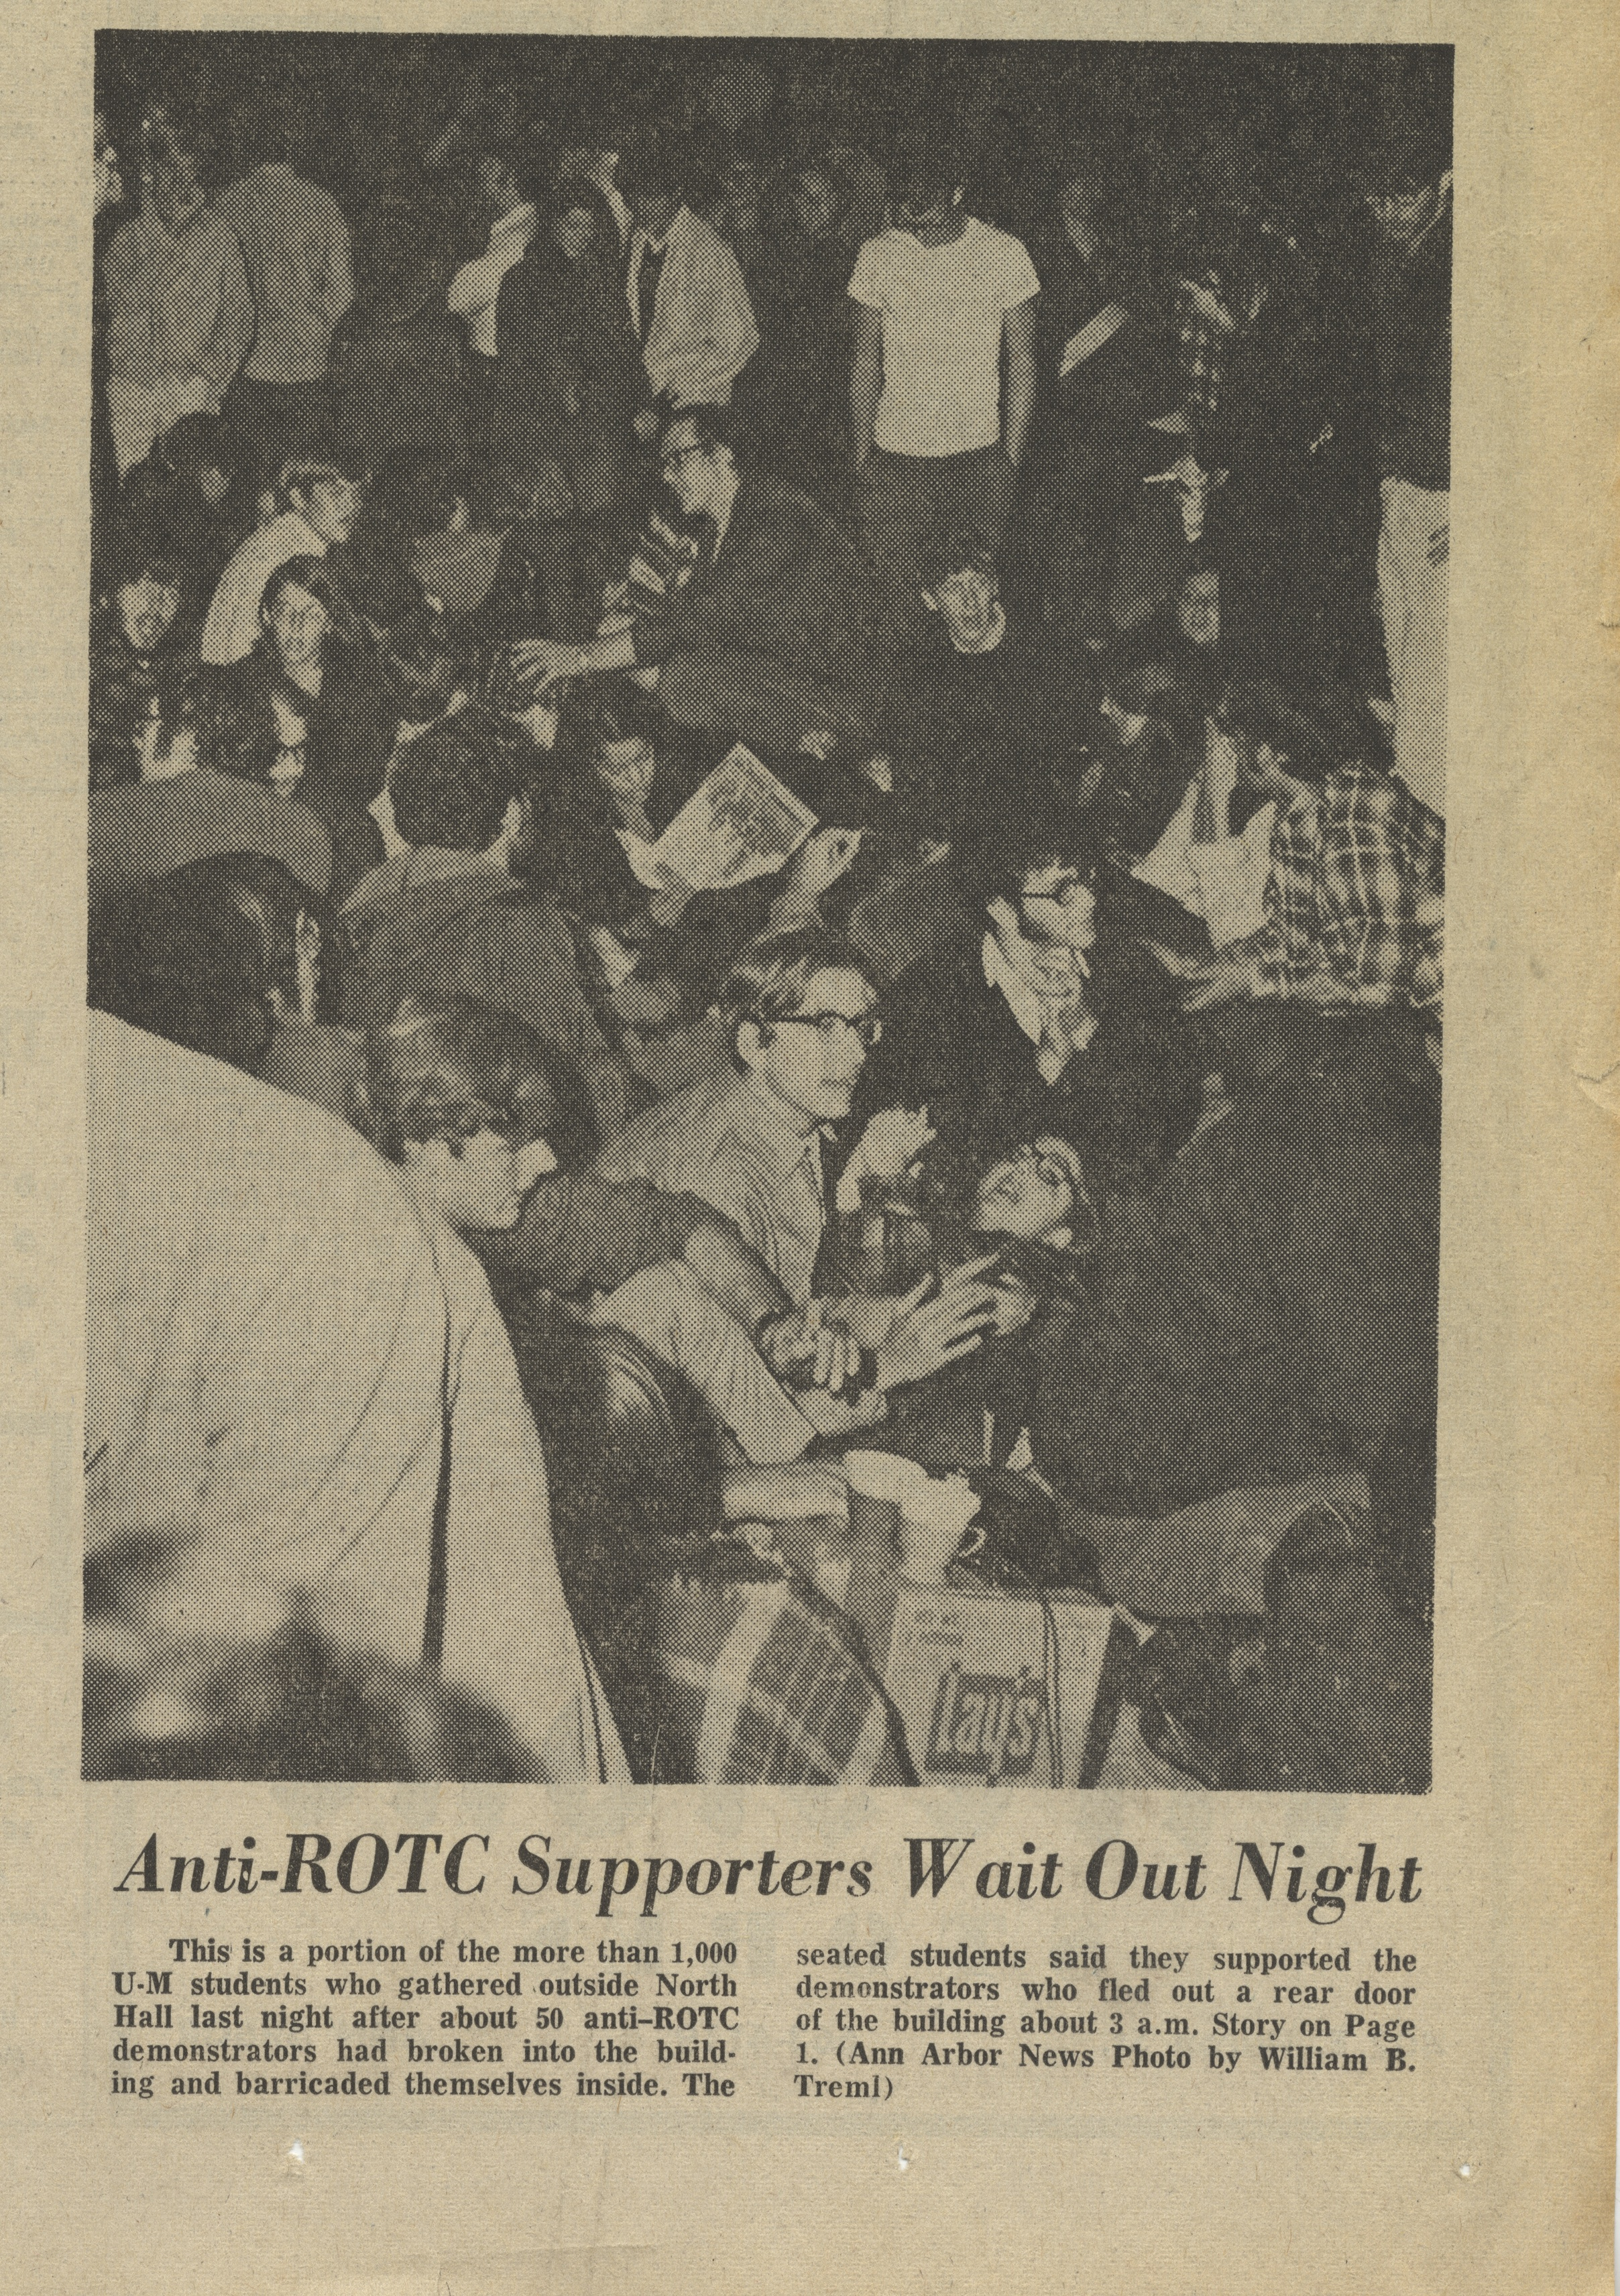 Anti-ROTC Supporters Wait Out Night image